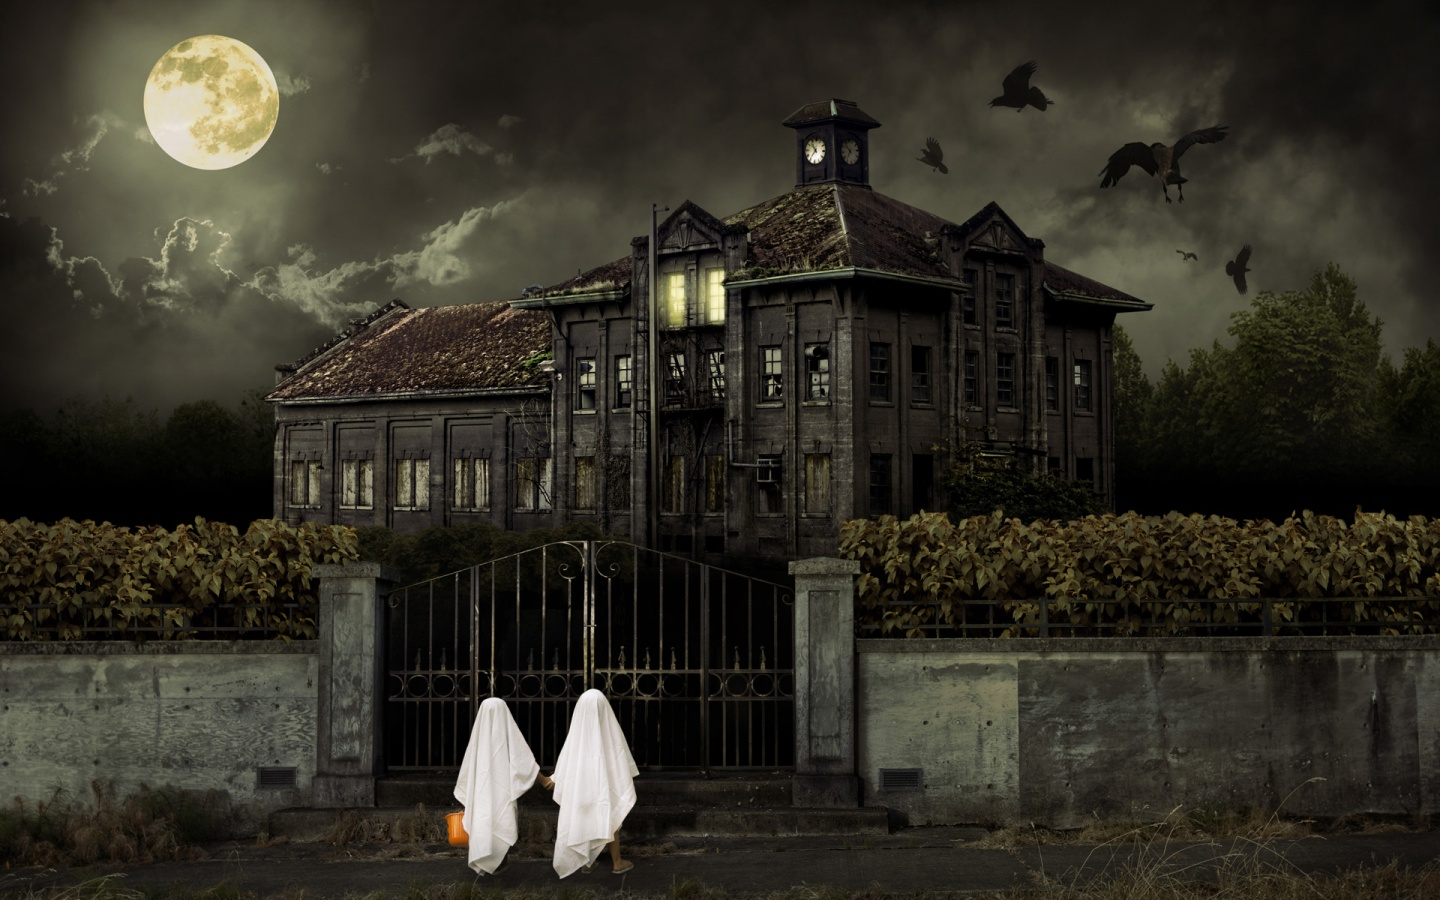 Halloween Haunted House HD Wallpaper Haunted HD Wallpaper 3D Horror 1440x900